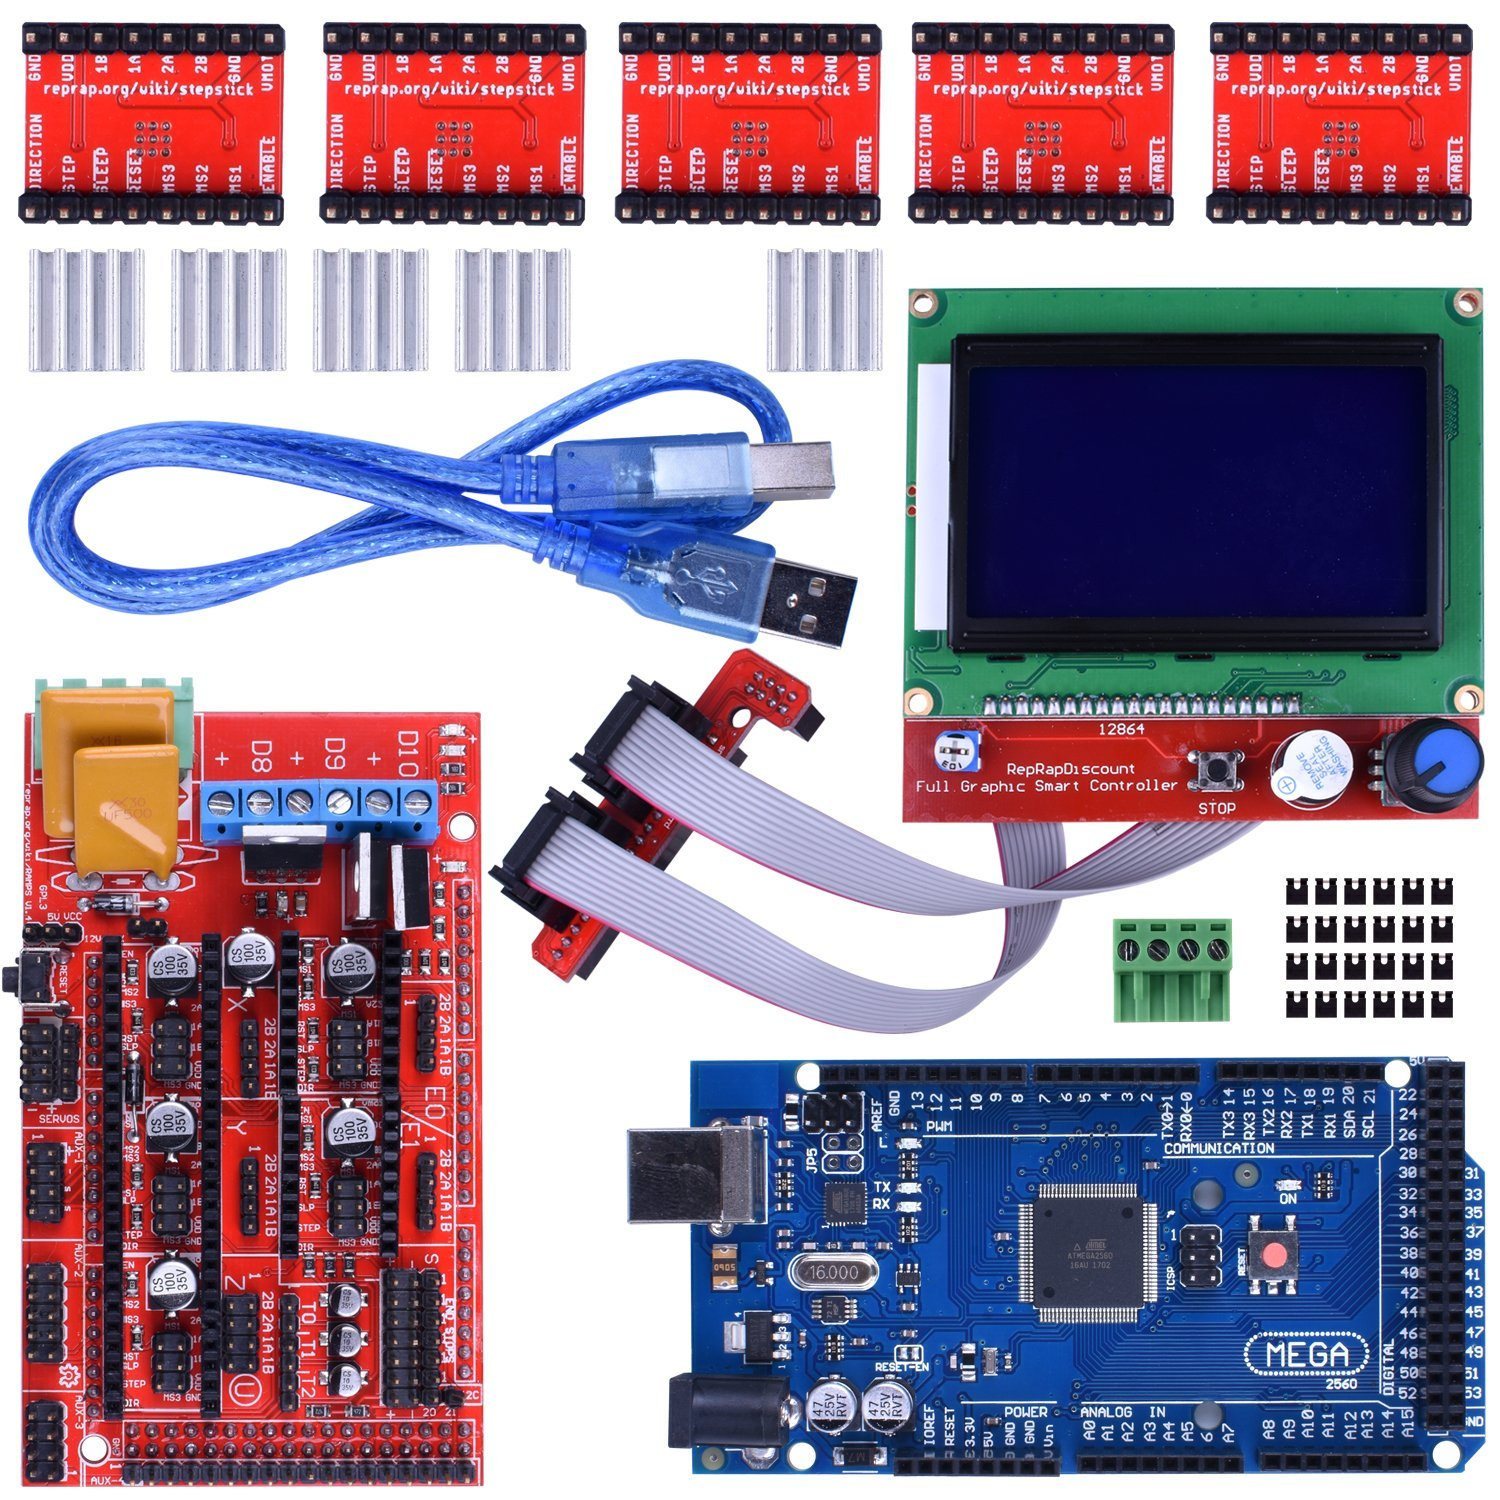 3D Printer Controller Kit + Mega2560 Uno R3 Starter Kits + Ramps 1.4 Upgraded Mosfet + 5pcs A4988 Stepper Motor Driver +LCD12864 soaringe e00316 3d printer kit mega2560 board ramp 1 4 extend shield 4 a4988 stepper drivers